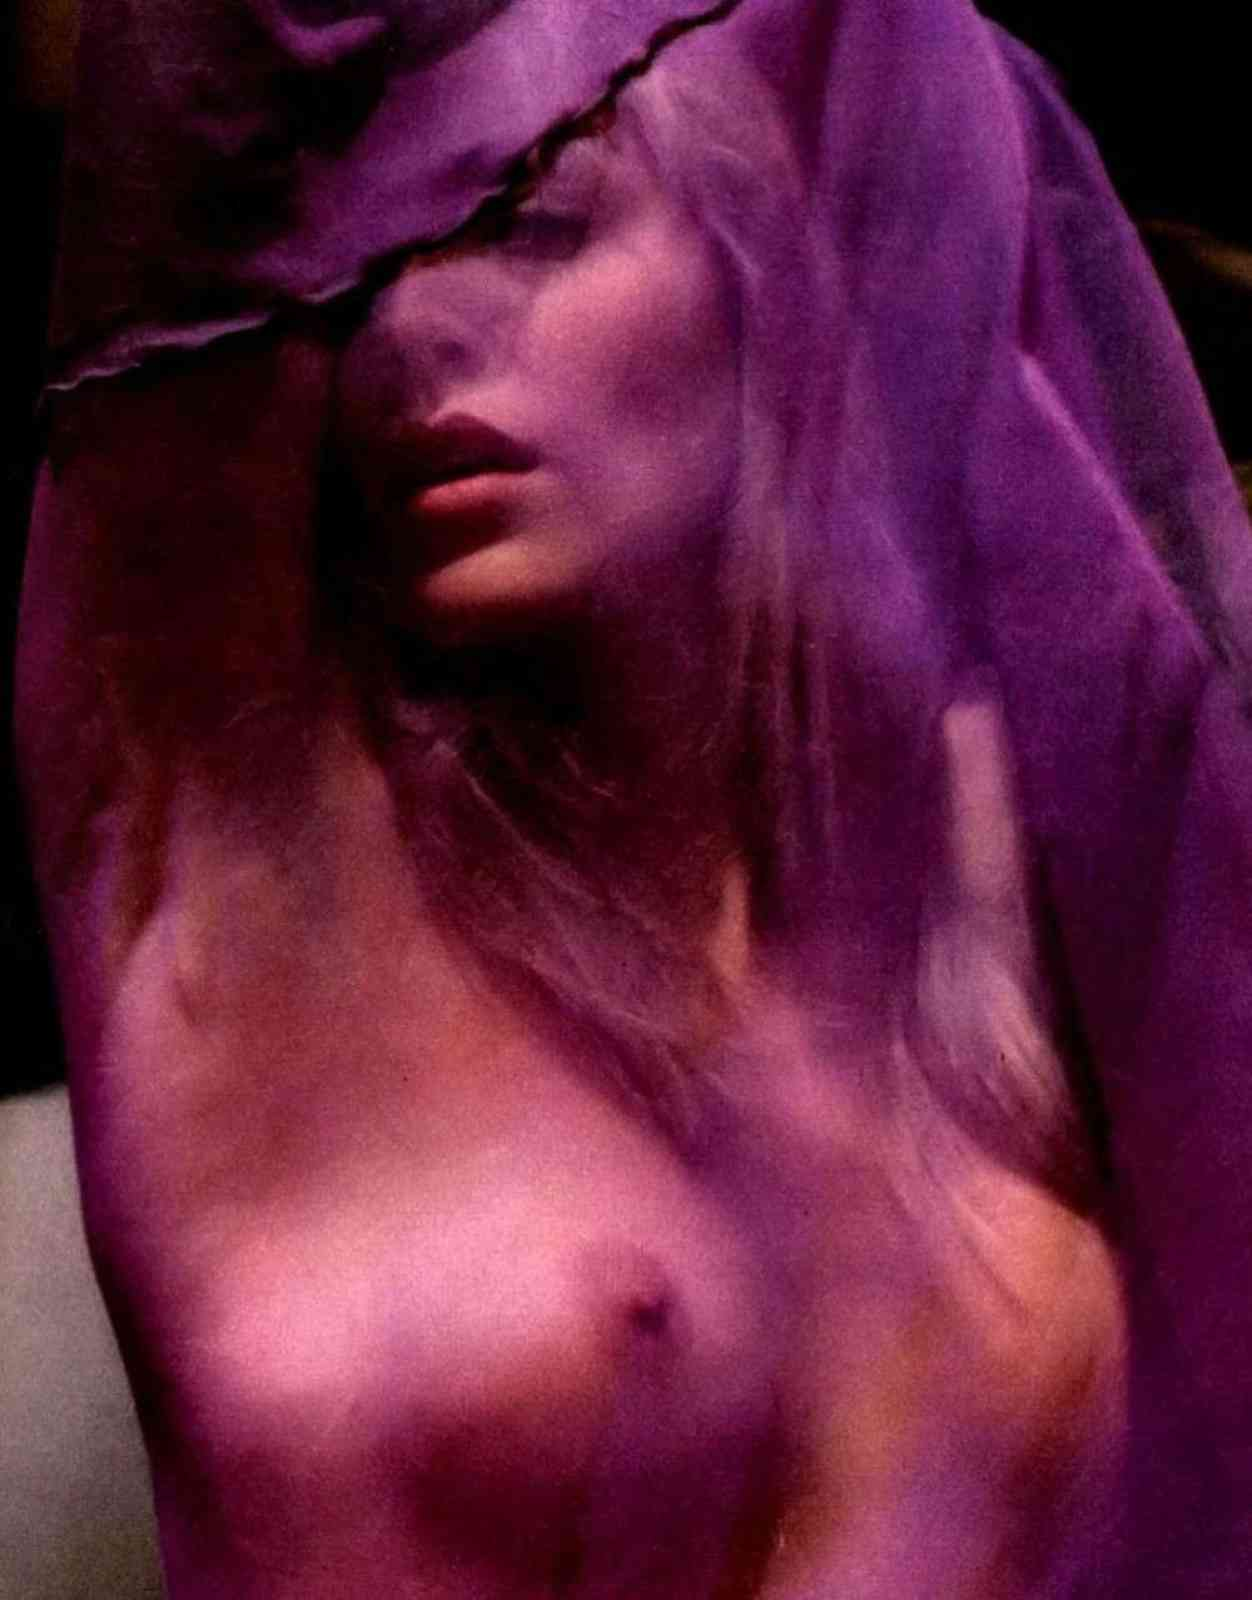 Sharon Stone - breasts